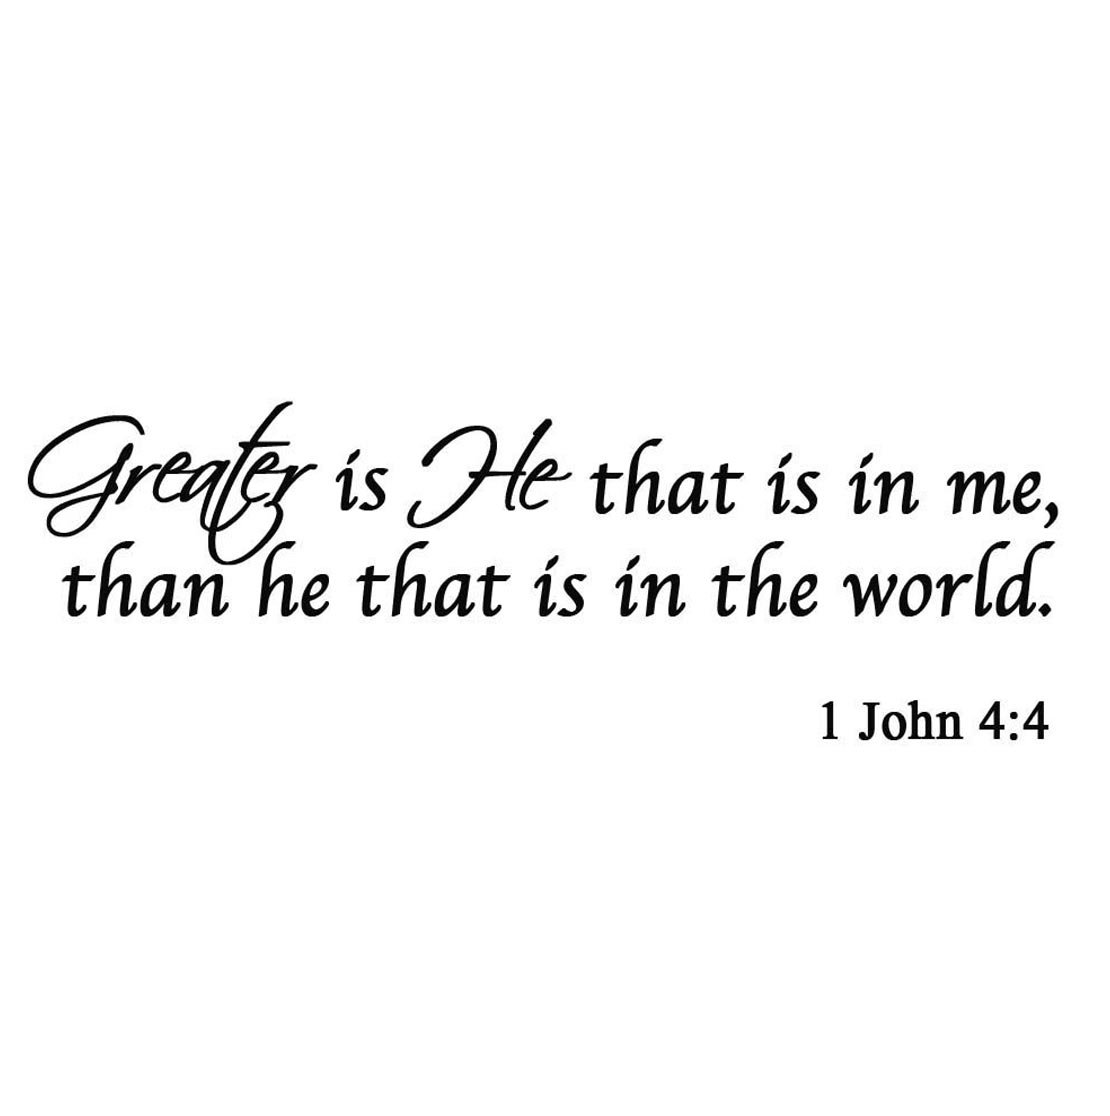 Greater is He that is in me, than he that is in the world. Bible Scripture Christian Vinyl Wall Art Decal by VWAQ